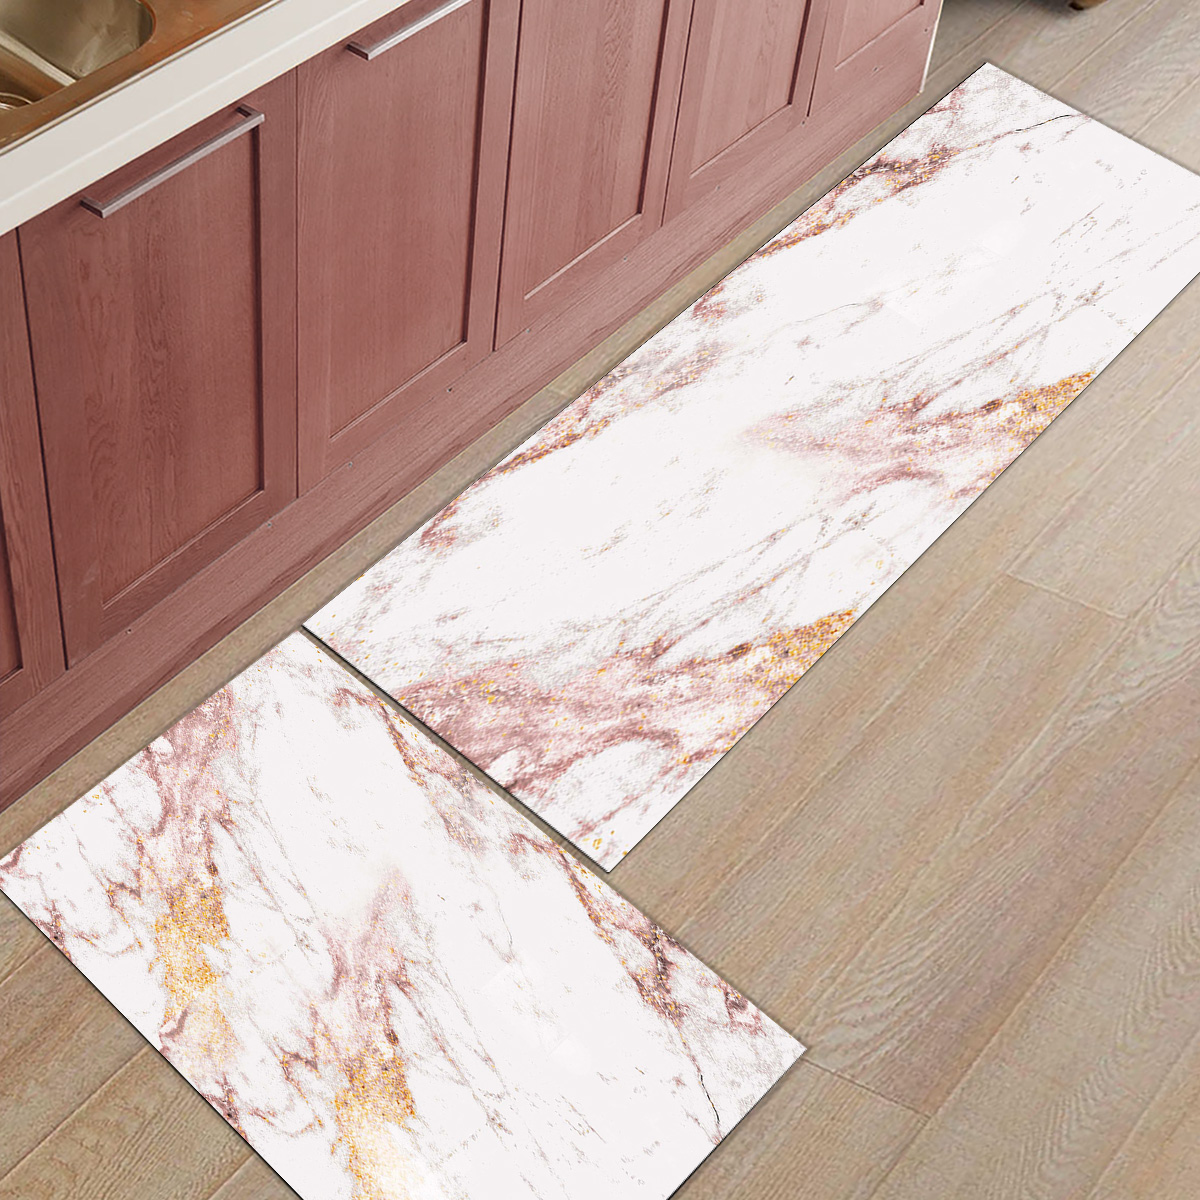 Rose Gold Flash Marble Trend1Doormats For Entrance Way Dirt Debris Mud Trapper Accessory Sets Floor Carpets Area Runners Living